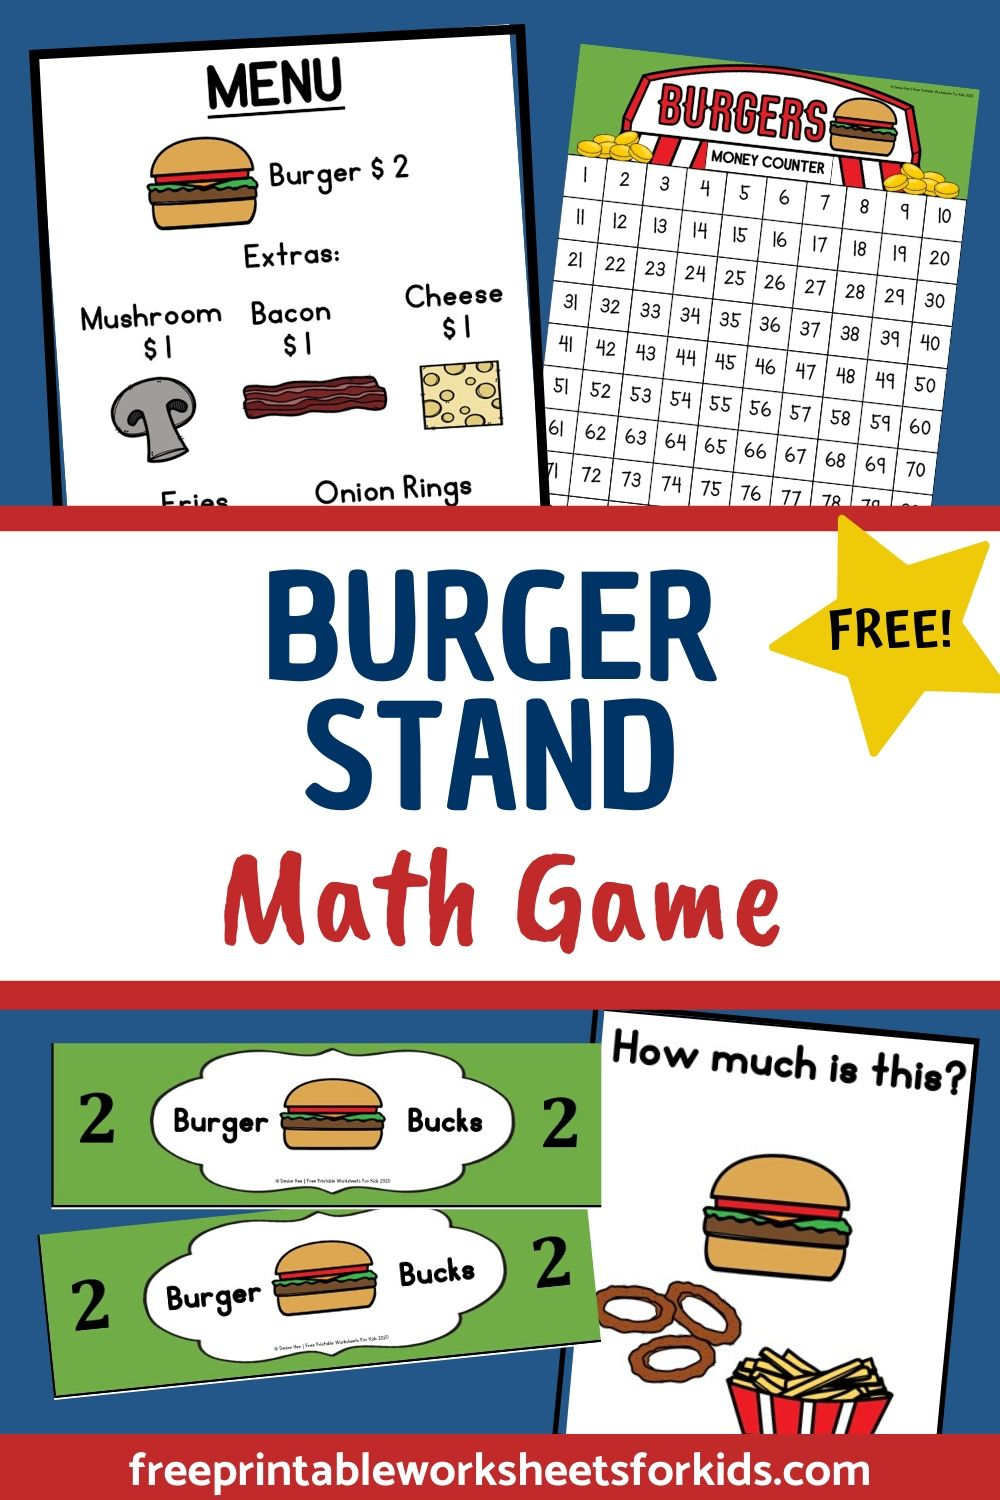 Fun Pretend Play Printables for Preschool and Kindergarten | Food Themed Counting Games | Hands On Addition Homeschool Activities | Kids Classroom Center Ideas and Worksheets #FreePrintableWorksheetsForKids #addition #count #burger #food #pretend